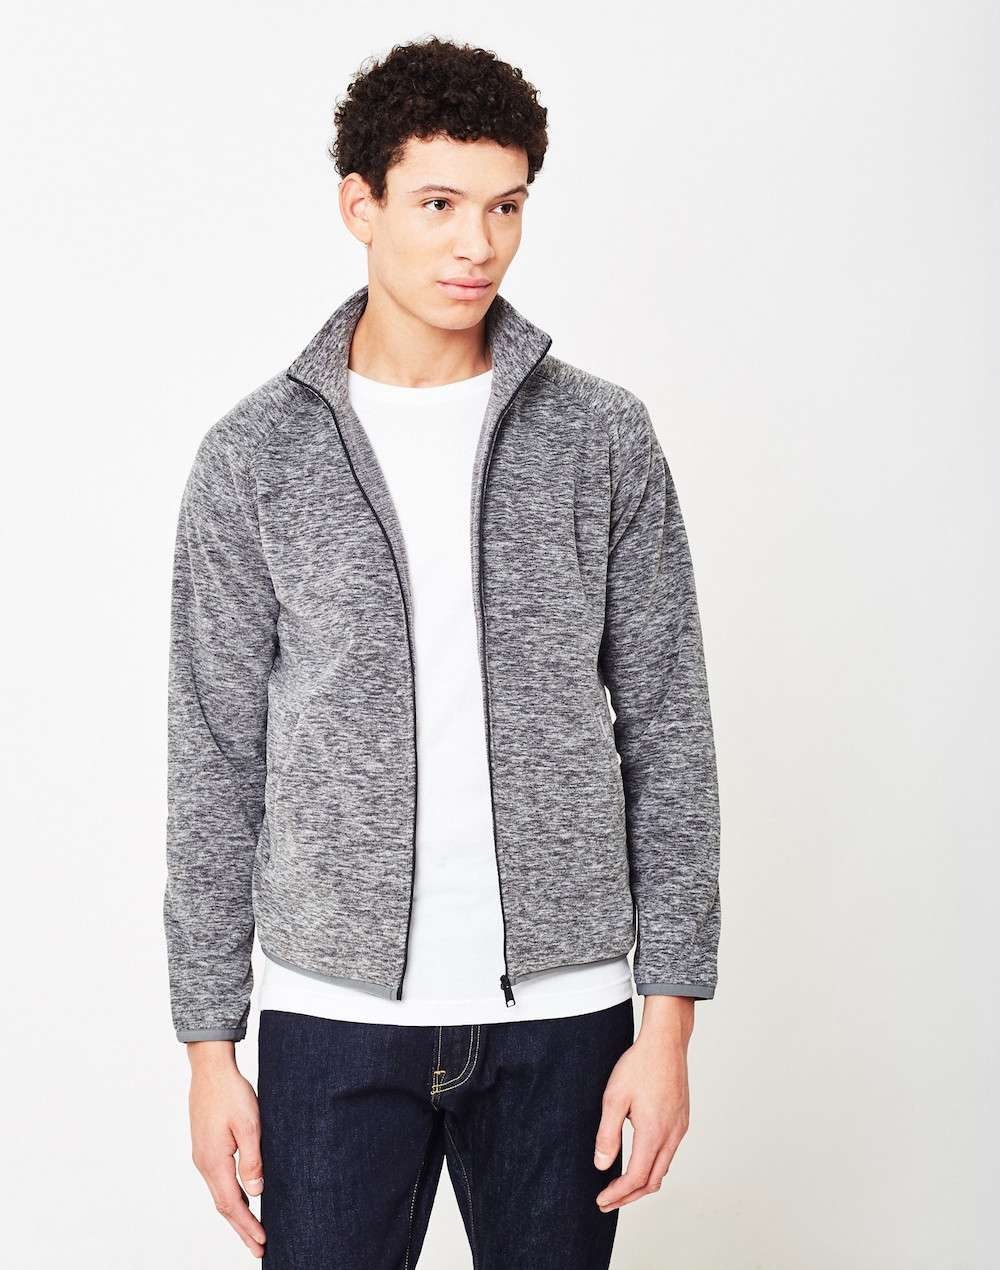 Carhartt WIP Grey jacket men